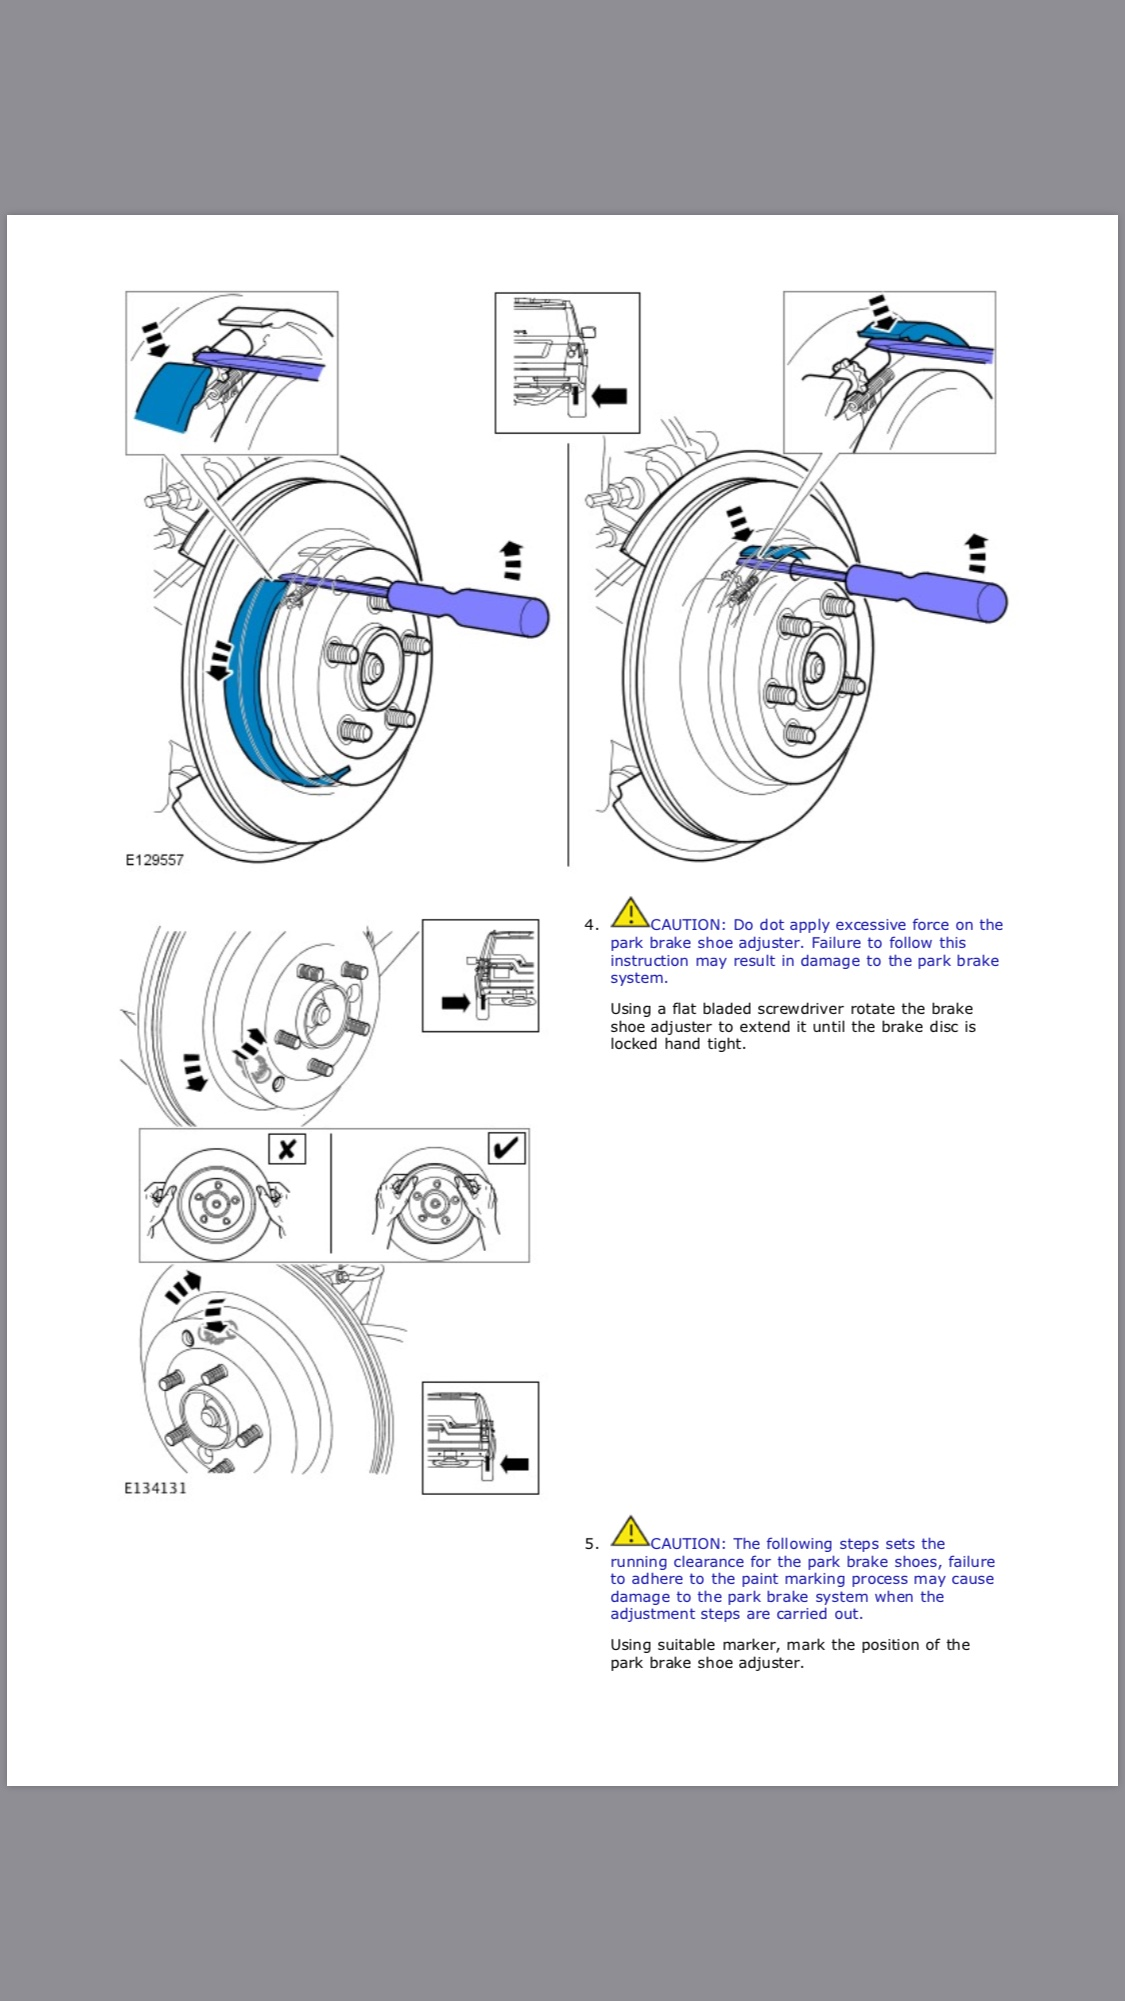 Parking brake service mode and adjustment knurl help